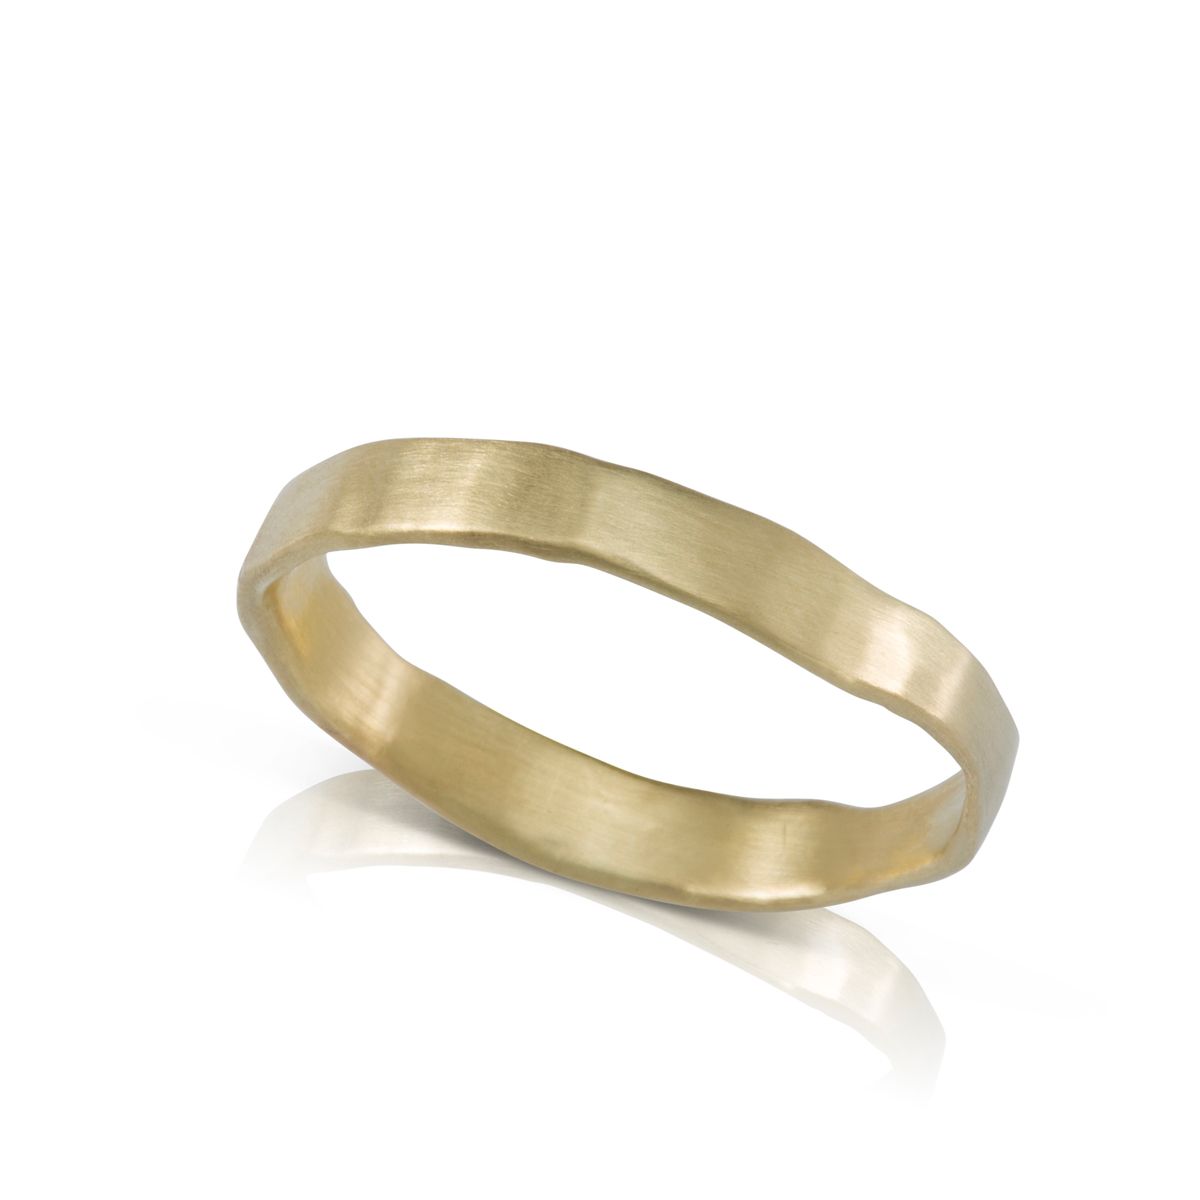 A gold ring in an asymmetrical handmade style